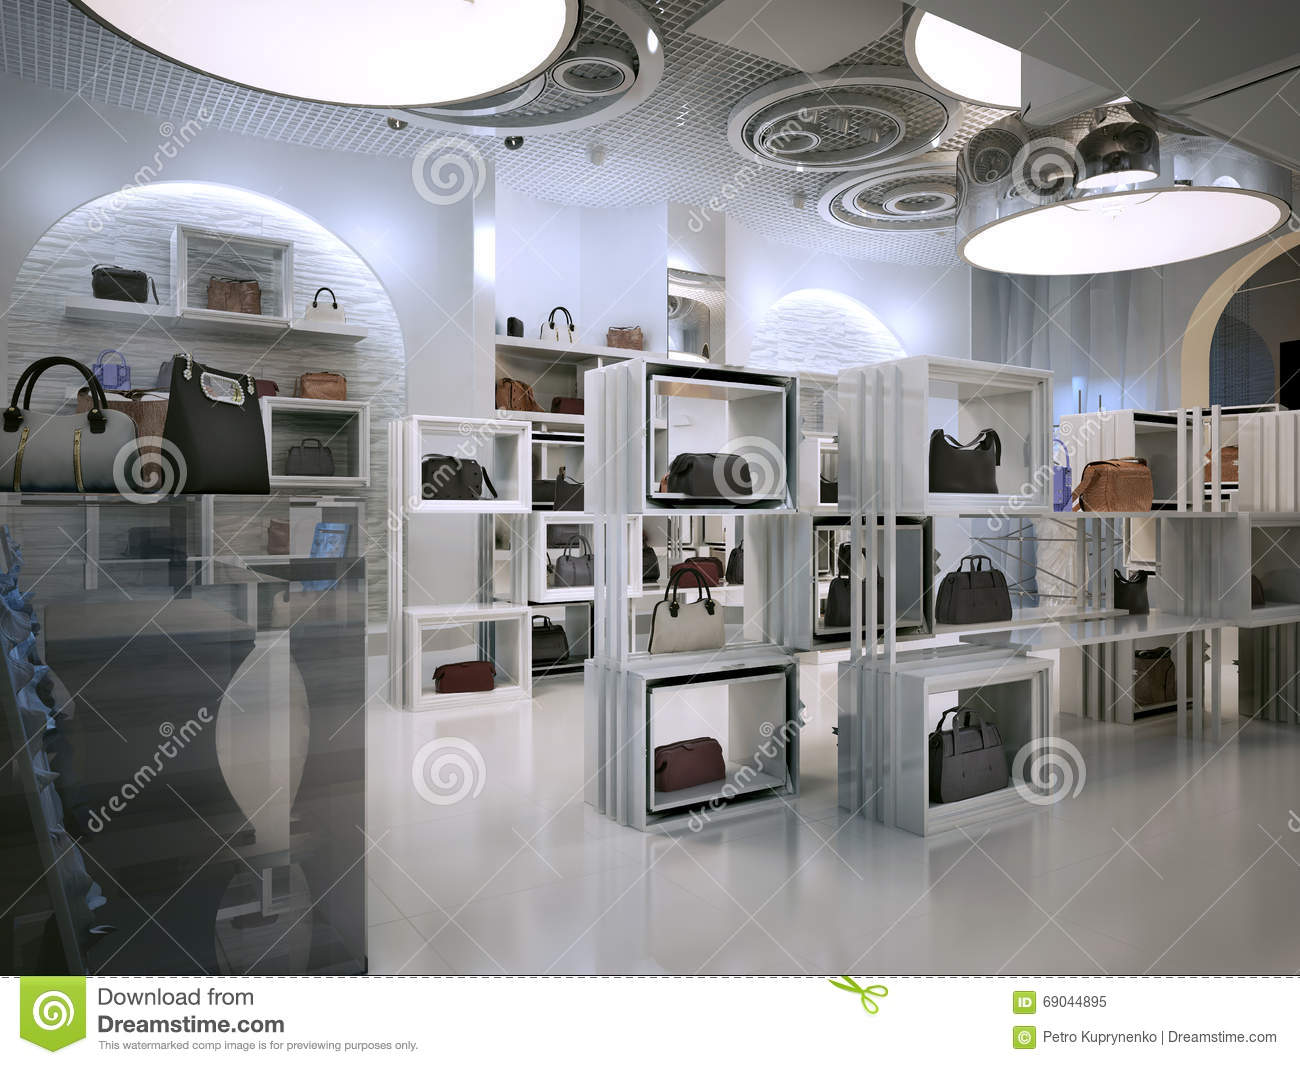 luxury store interior design art deco style with hints of contem